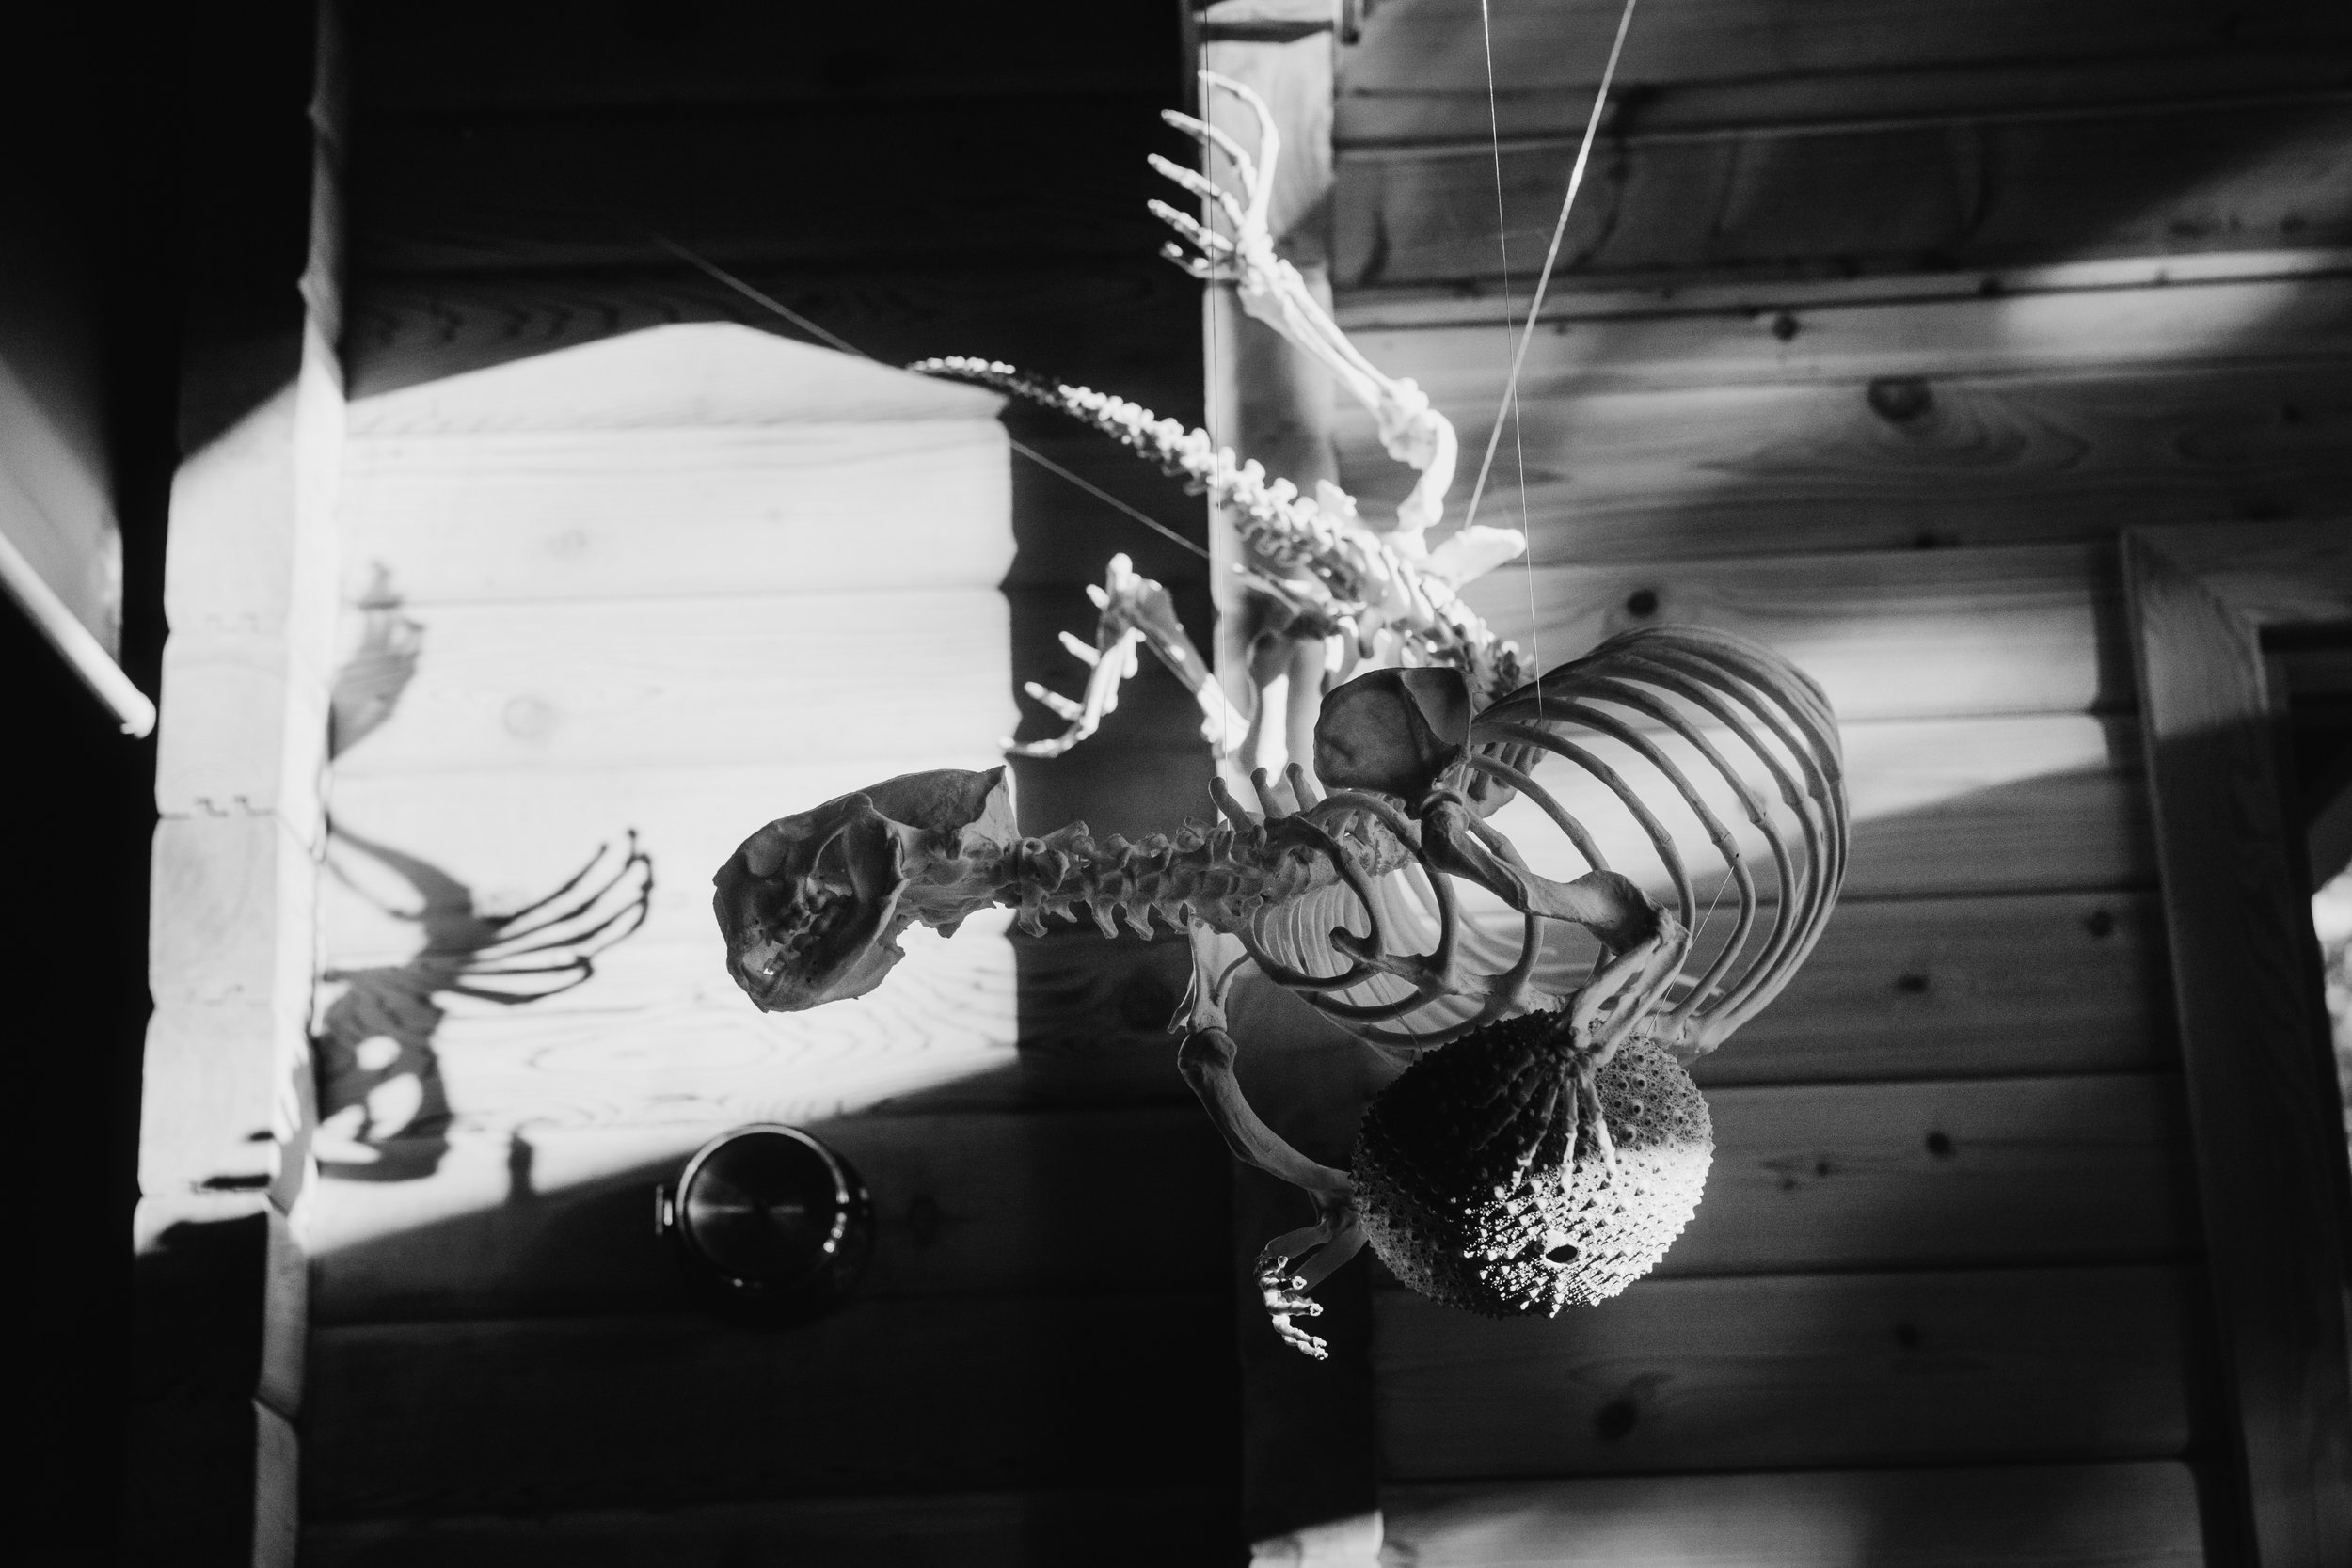 Every skeleton has a story.    The one you see here is a sea otter that died most likely of tooth decay off of Calvert Island. It was reconstructed by Mike deRoos and now hangs at the Hakai Institute diving for its favourite food - a giant Red Sea urchin.